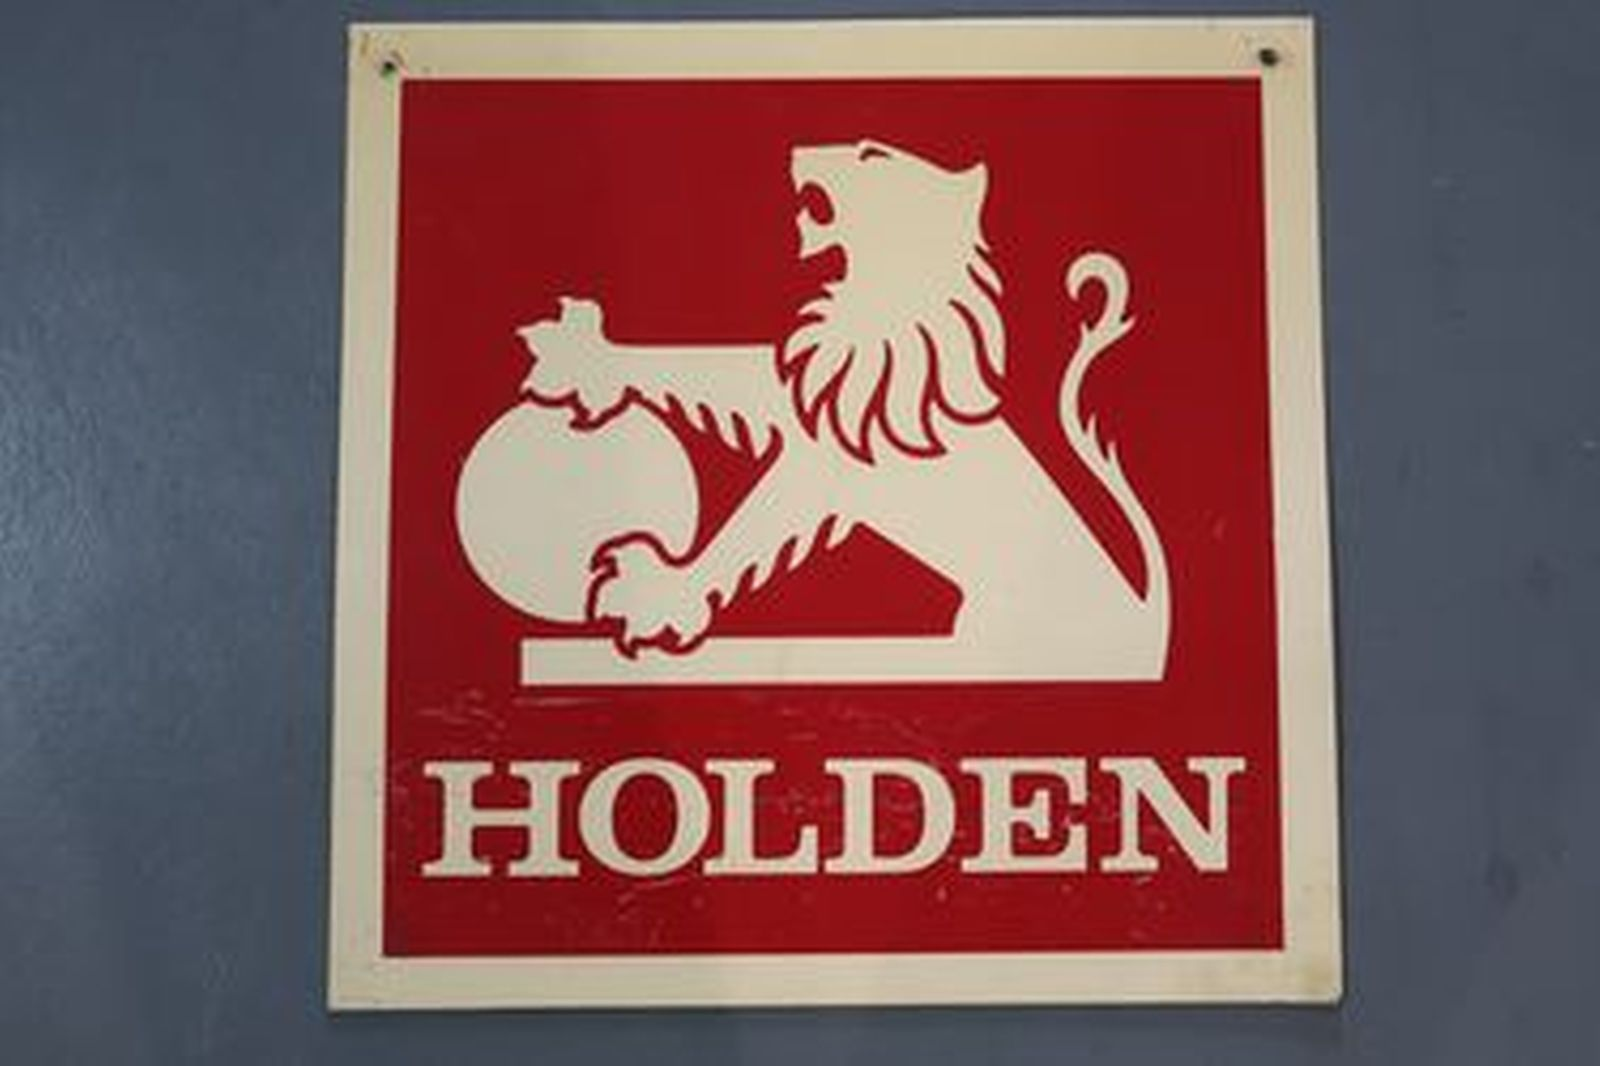 Sign - Holden Dealer Square Red on White Plastic Sign (61 x 61cm)